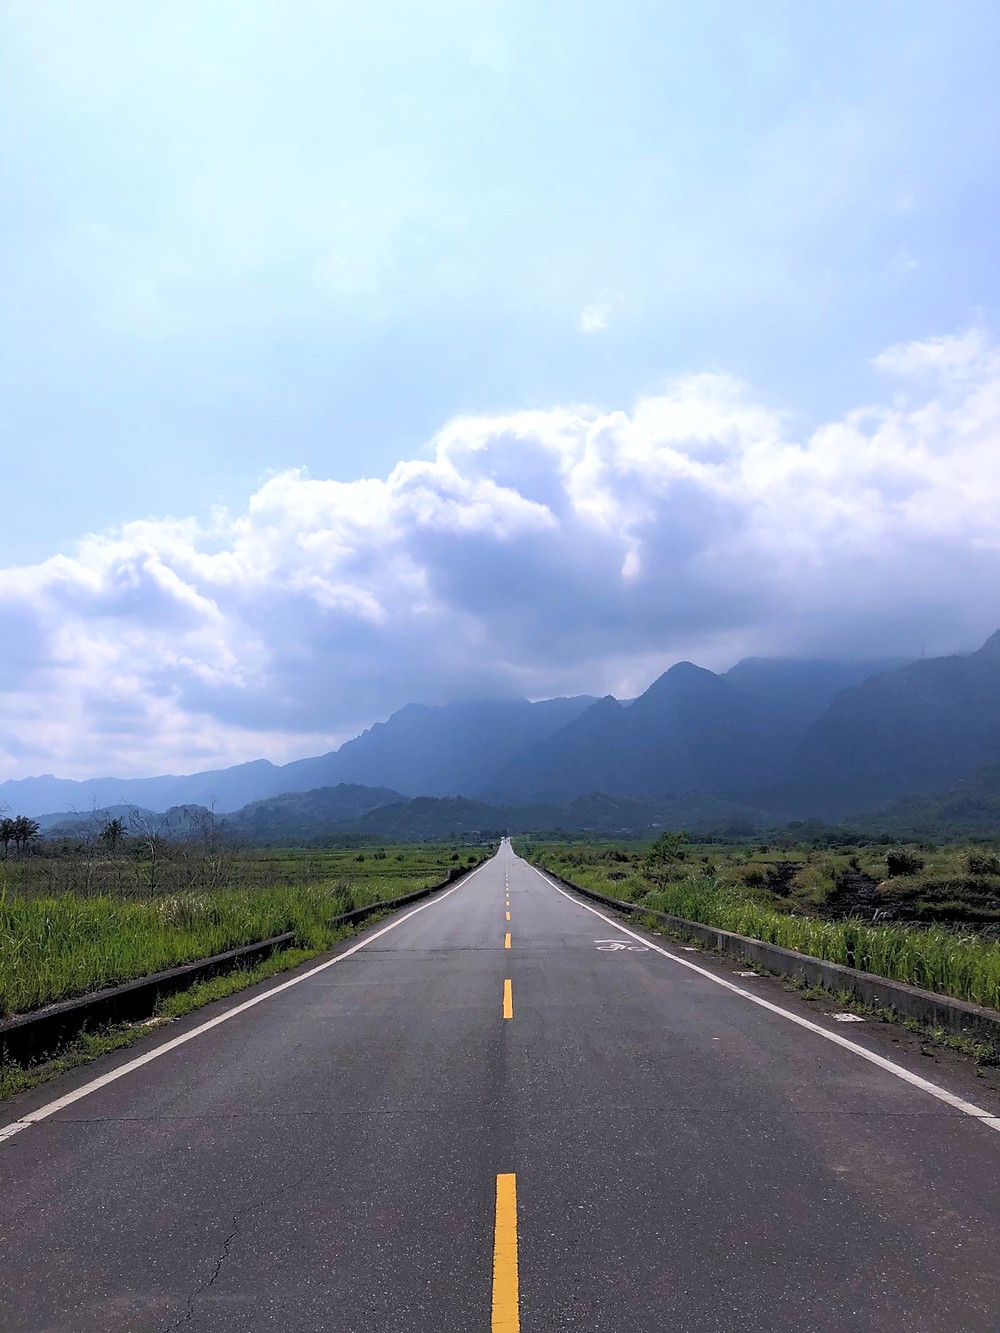 Taitung's King Kong Boulevard is often a deserted road with bucolic scenery.